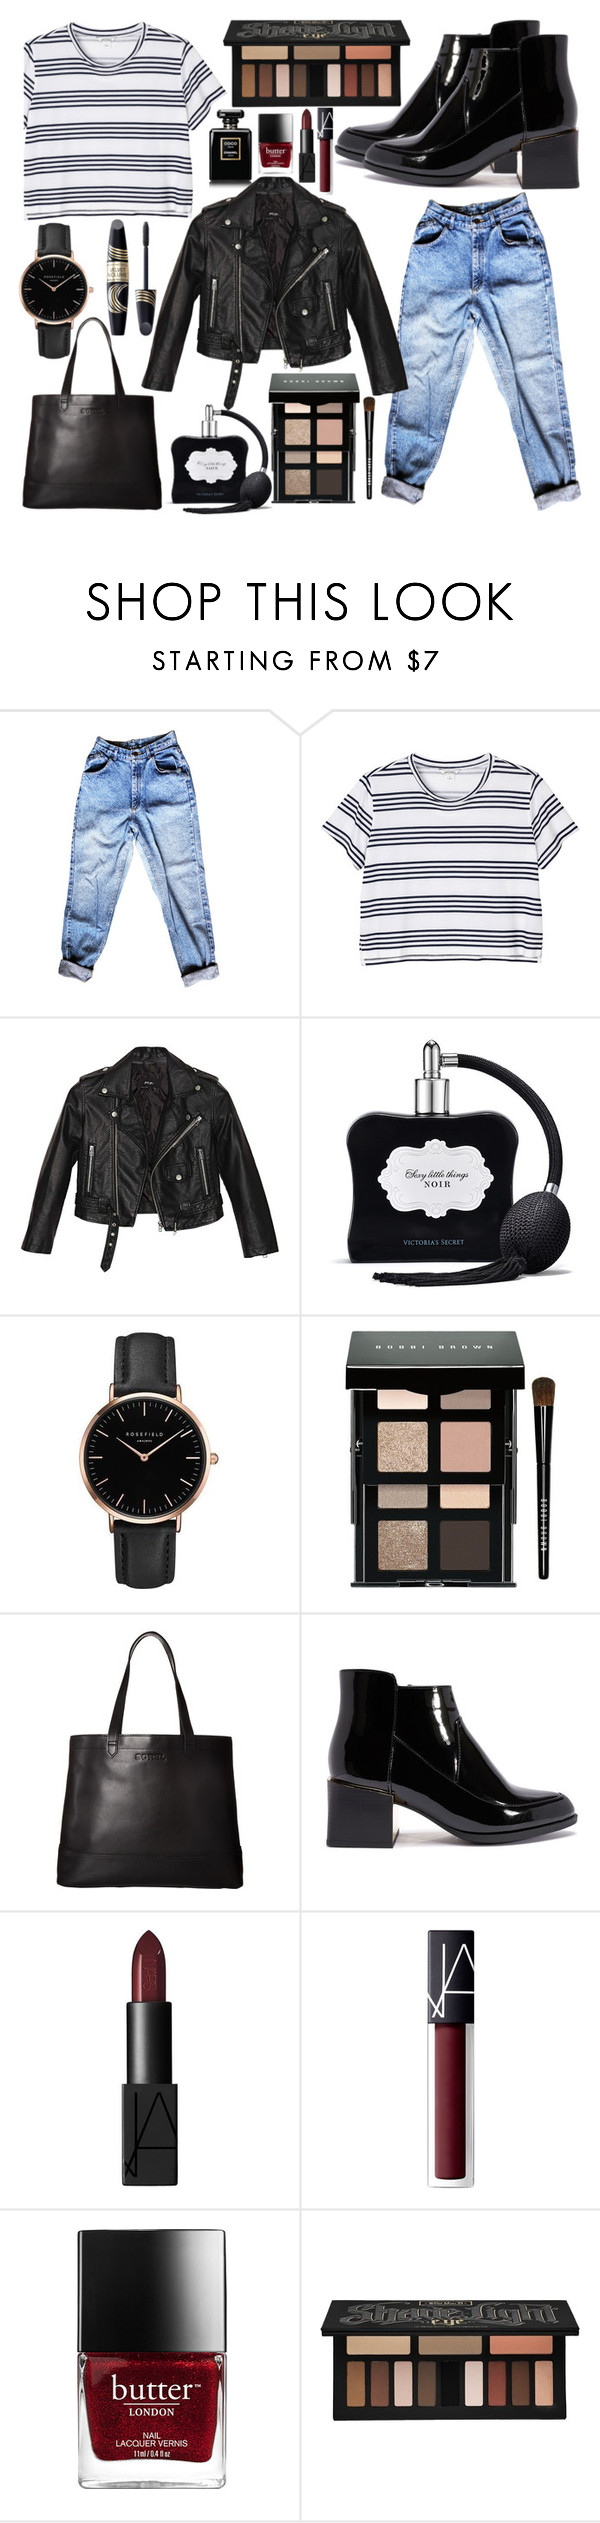 """""""ootd"""" by chantal-07 ❤ liked on Polyvore featuring Monki, Nasty Gal, Victoria's Secret, Topshop, Max Factor, Bobbi Brown Cosmetics, SOREL, NARS Cosmetics and Kat Von D"""